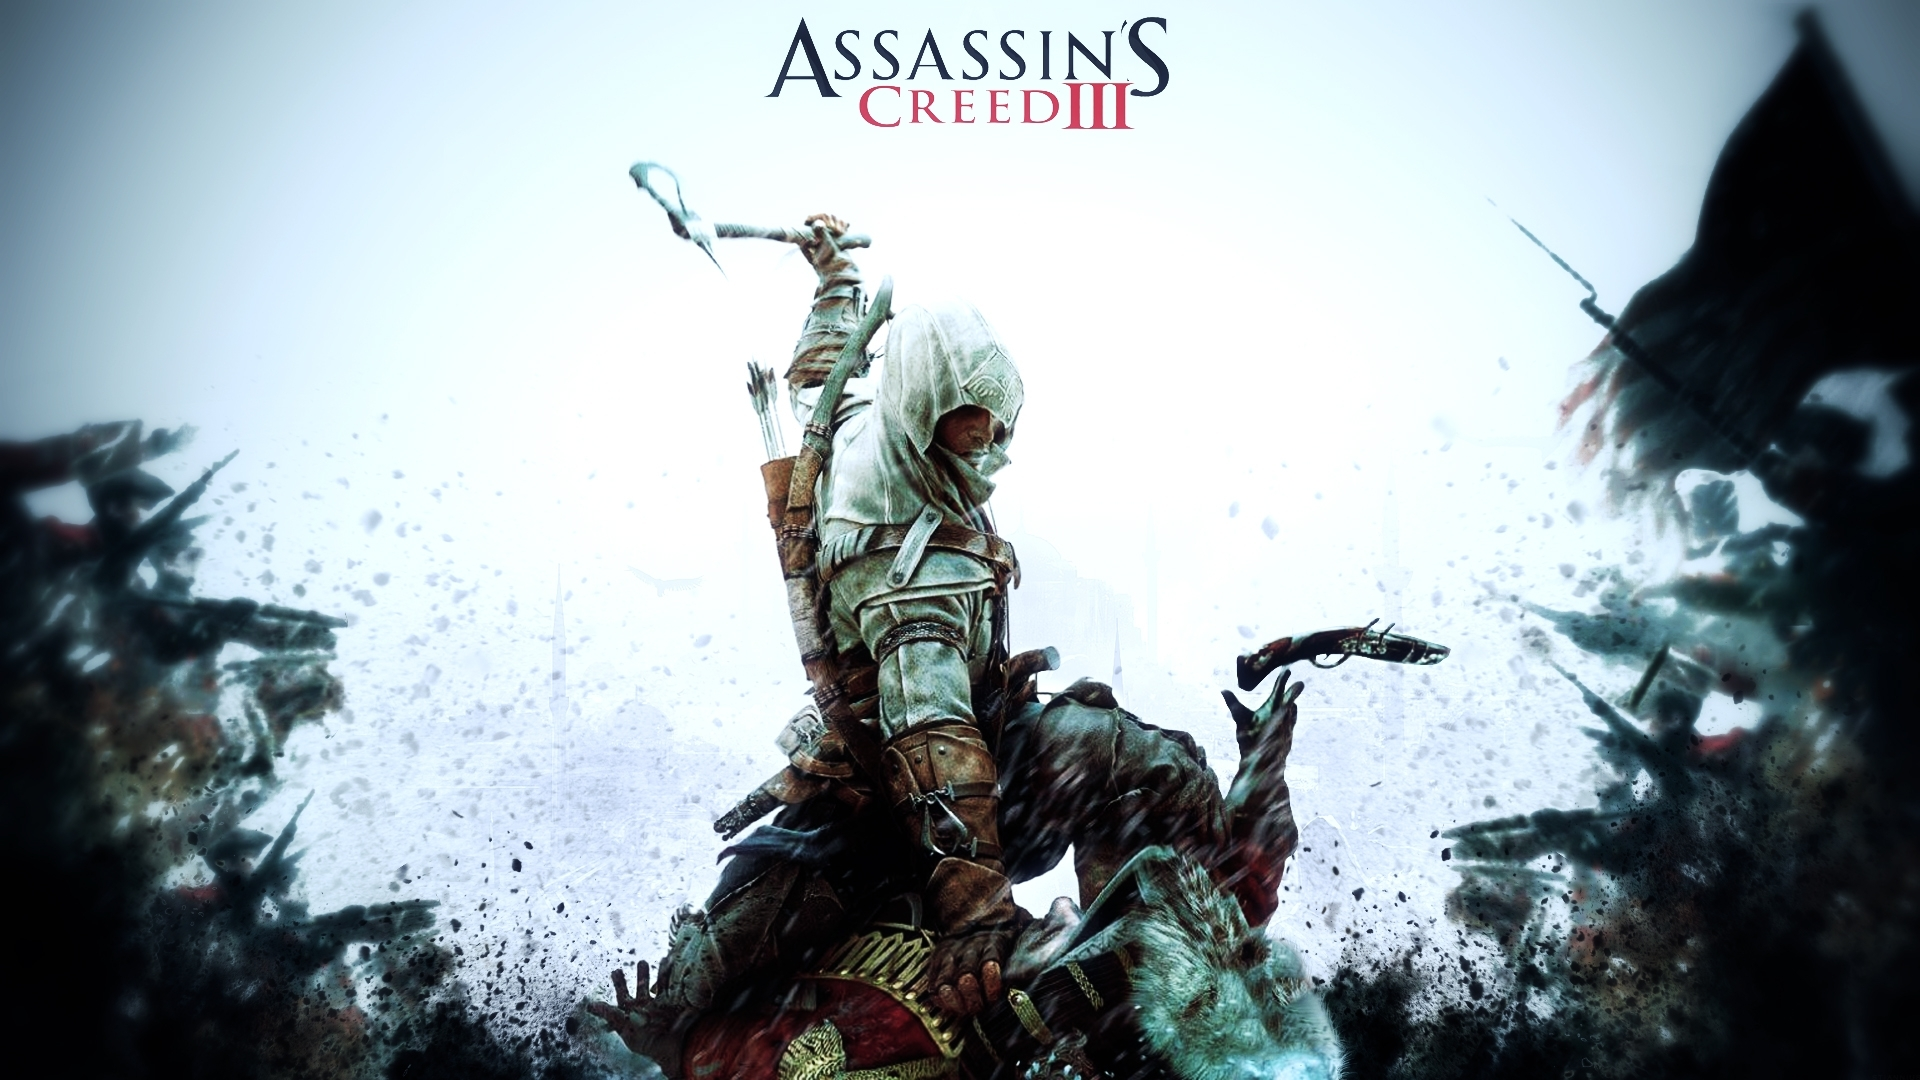 10 Latest Assassin's Creed 3 Wallpaper Hd FULL HD 1080p For PC Desktop